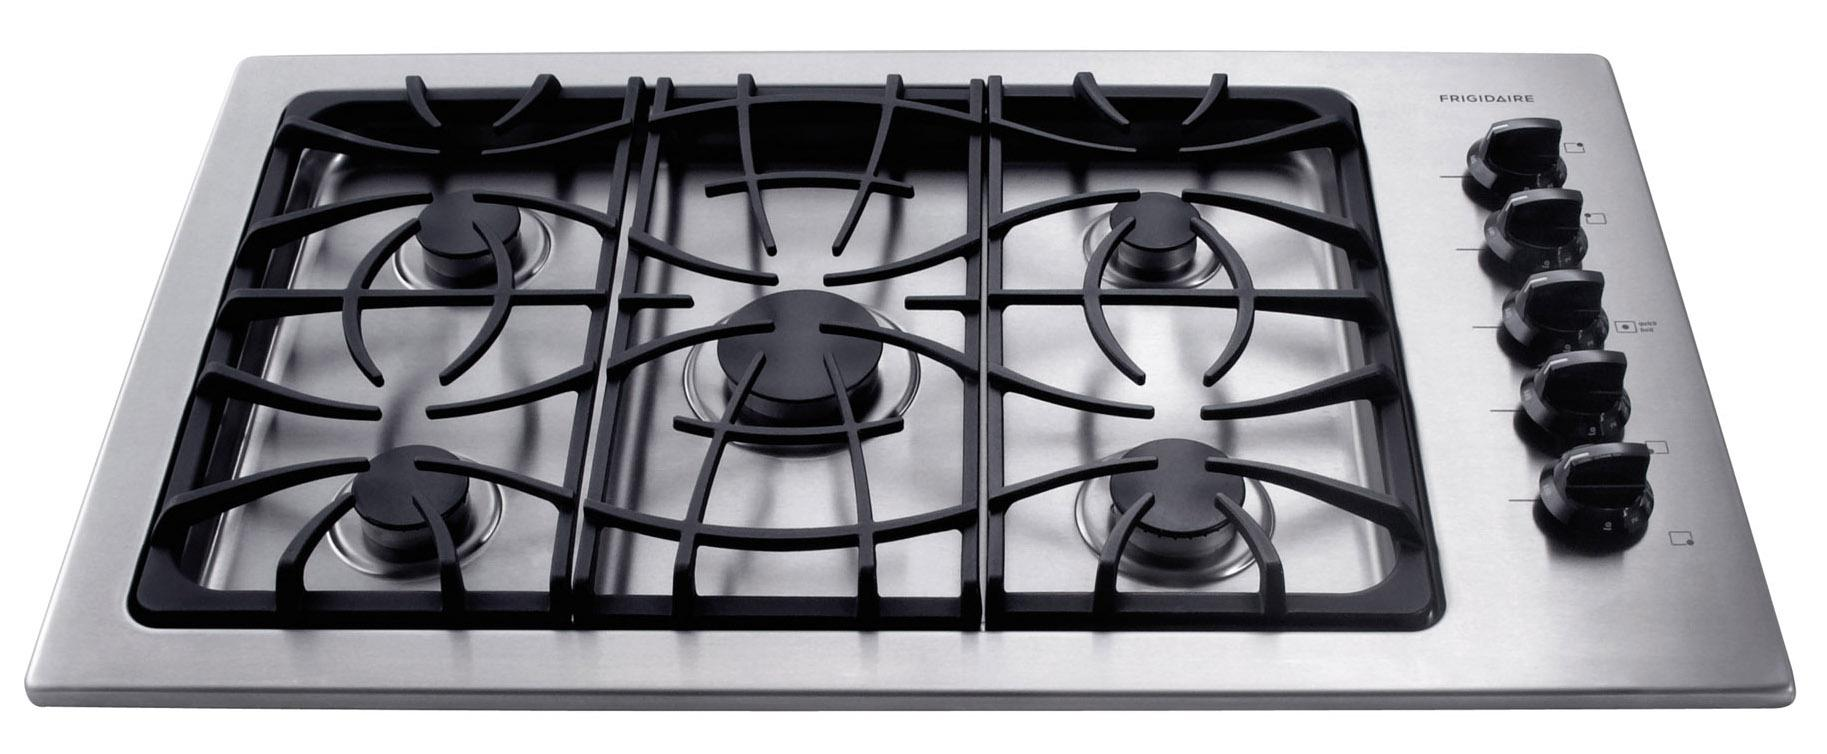 "Frigidaire Gas Cooktop 36"" Built-In Gas Cooktop - Item Number: FFGC3625LS"